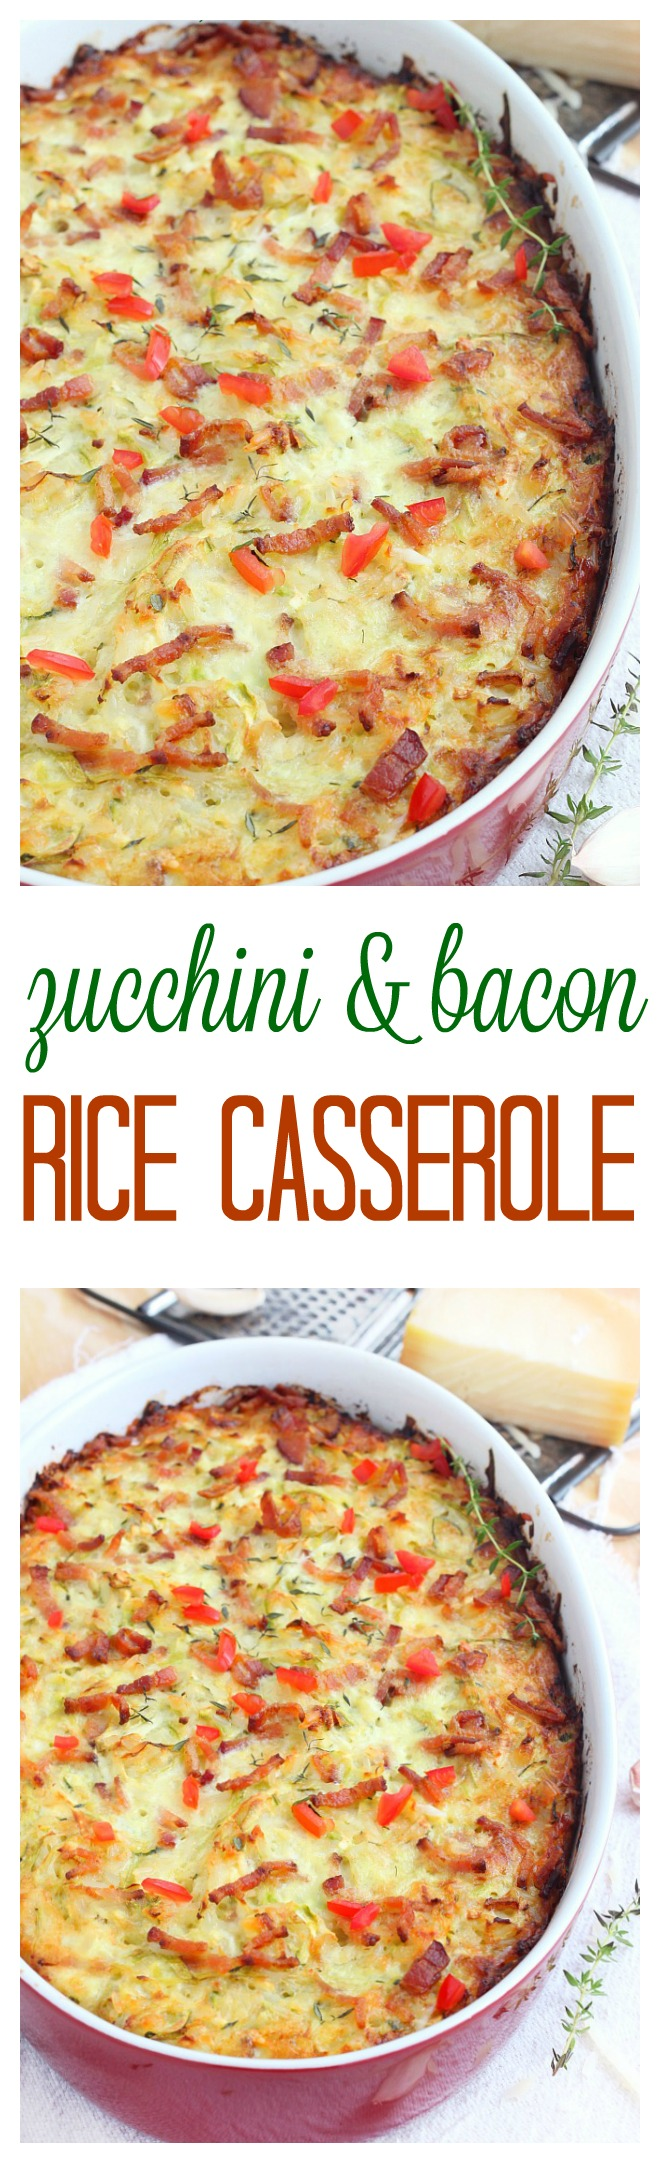 One mixing bowl and one casserole are needed to make this cheesy zucchini bacon rice casserole. Make it ahead of time and bake it just before dinner.